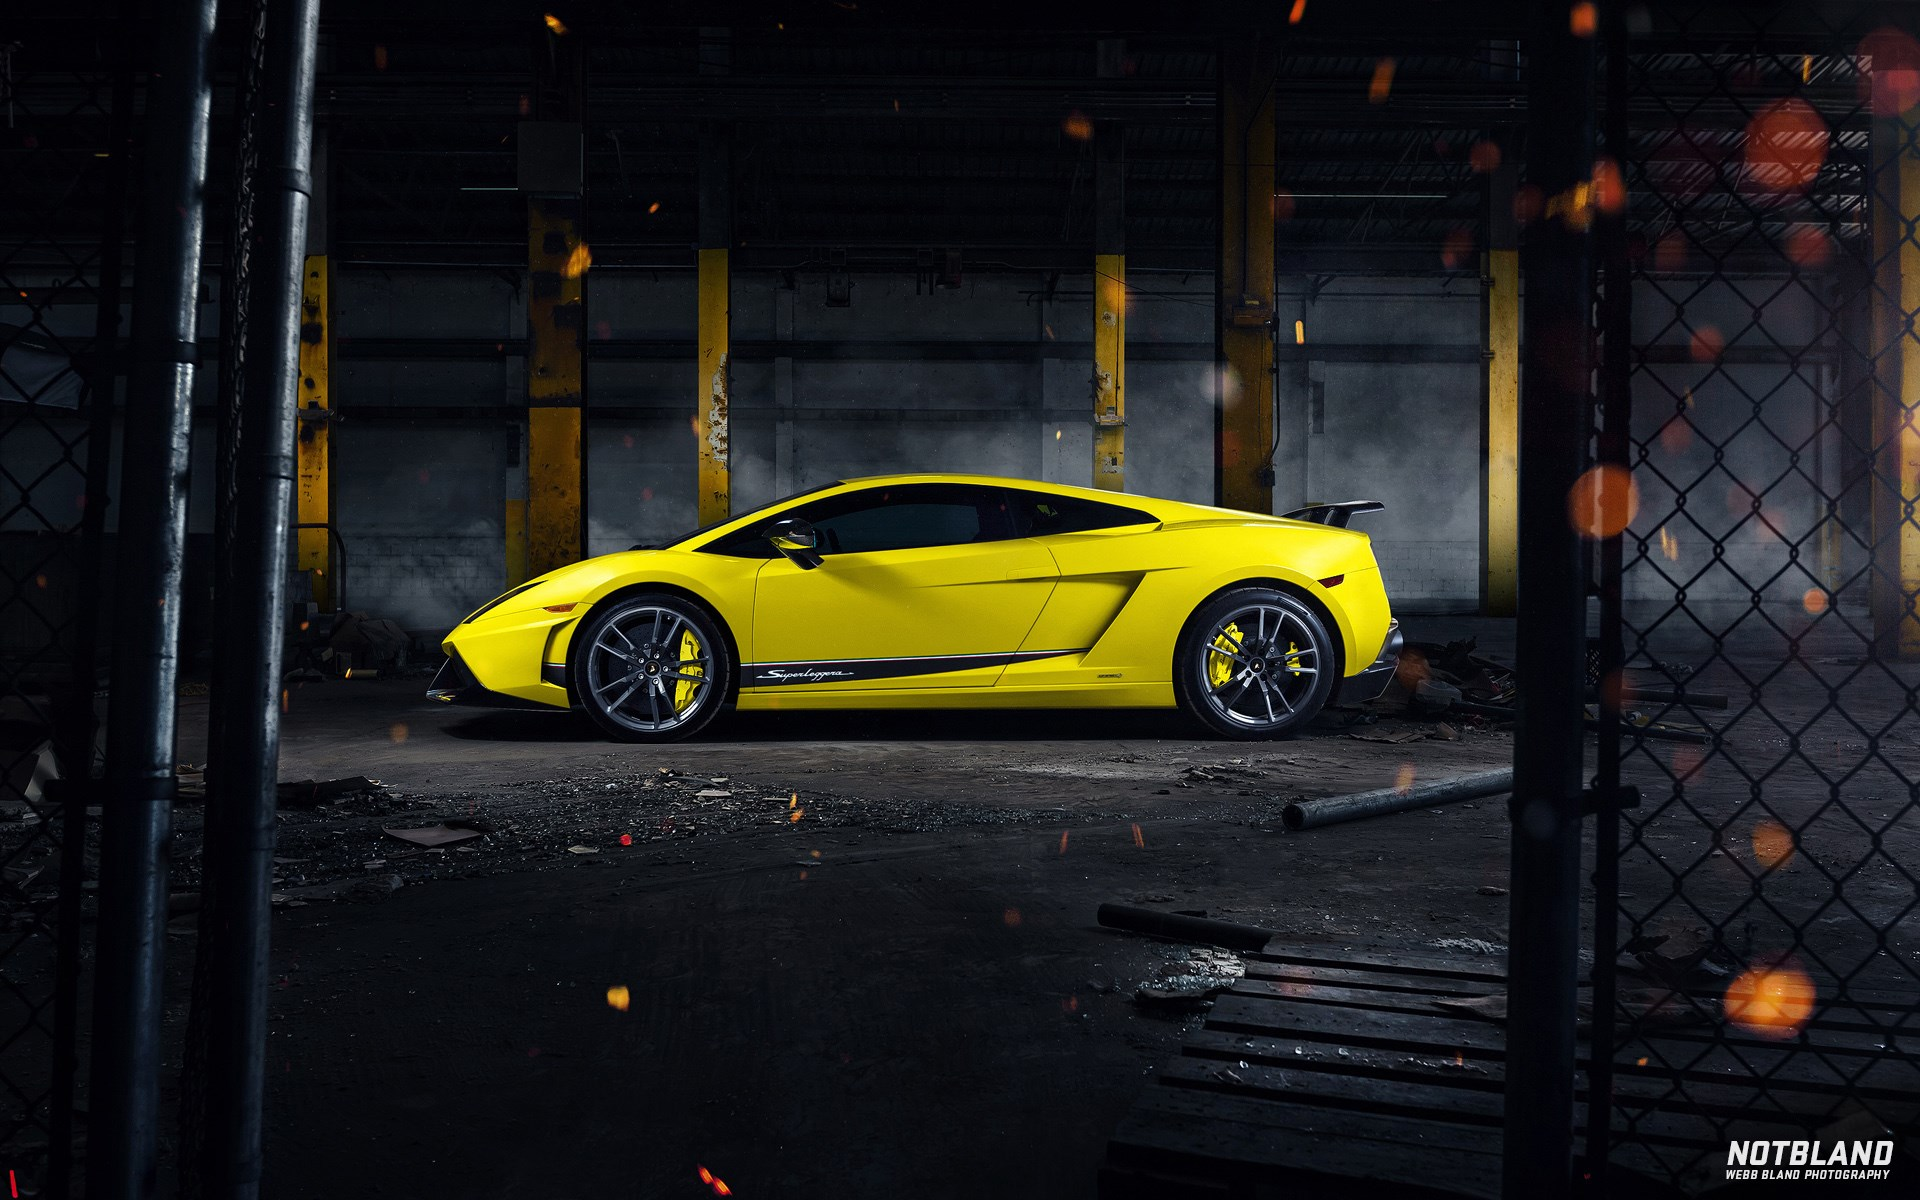 Car Lamborghini Gallardo Superleggera Yellow Side Warehouse